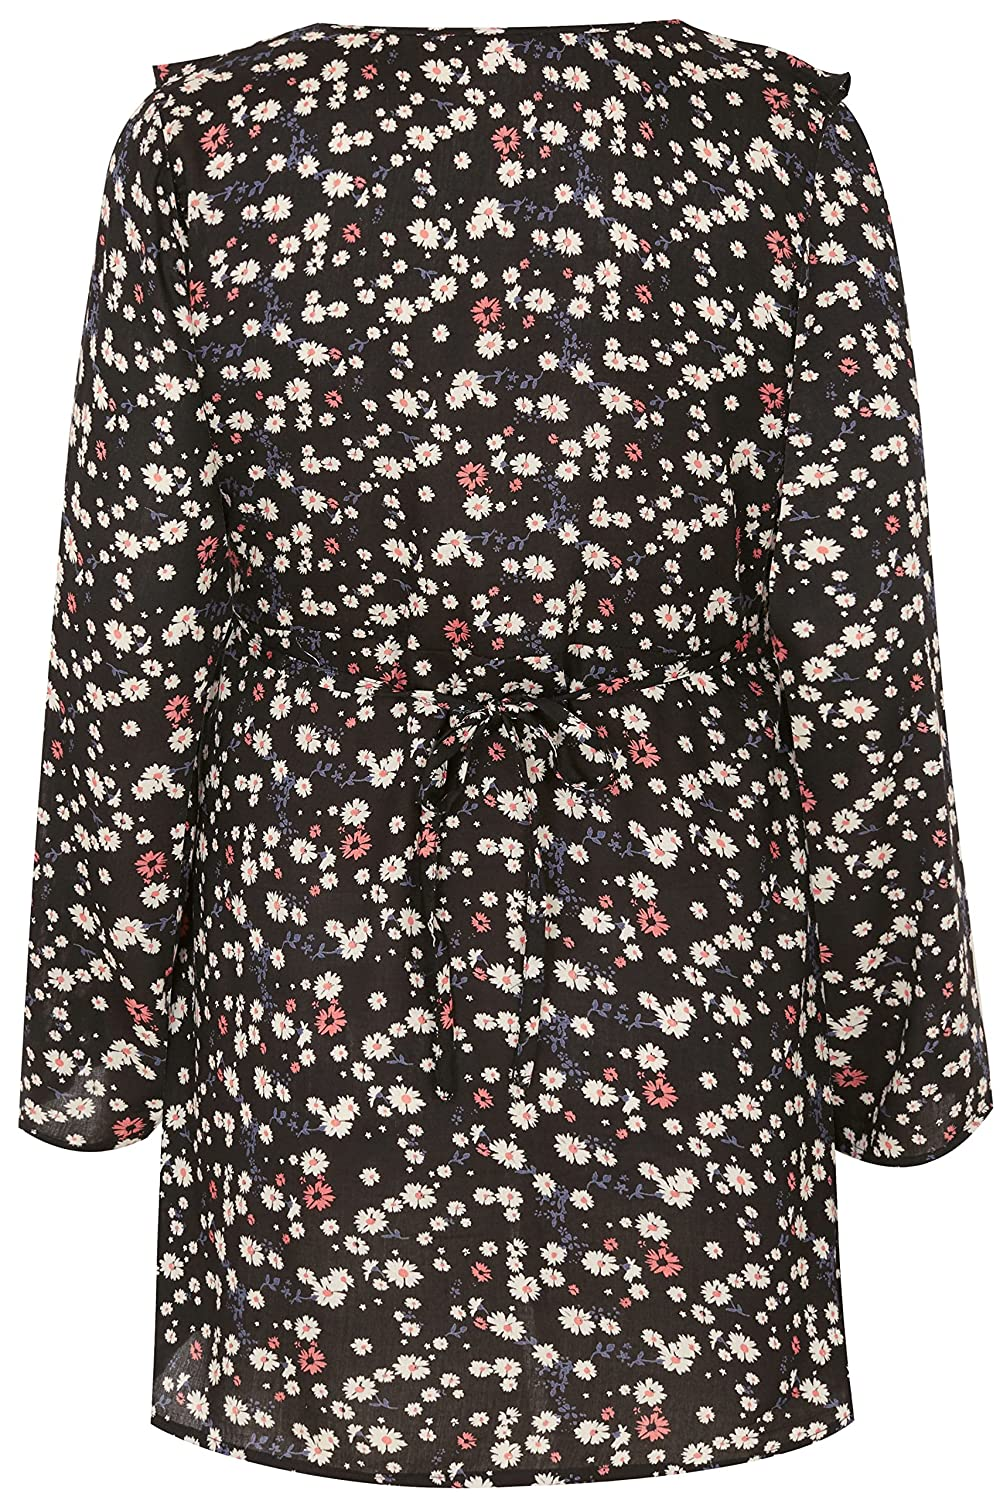 36ce7c8c0b8a5 Yours Women's Plus Size Bump It Up Maternity Black & Multi Floral Ruffle  Wrap Top with: Amazon.co.uk: Clothing